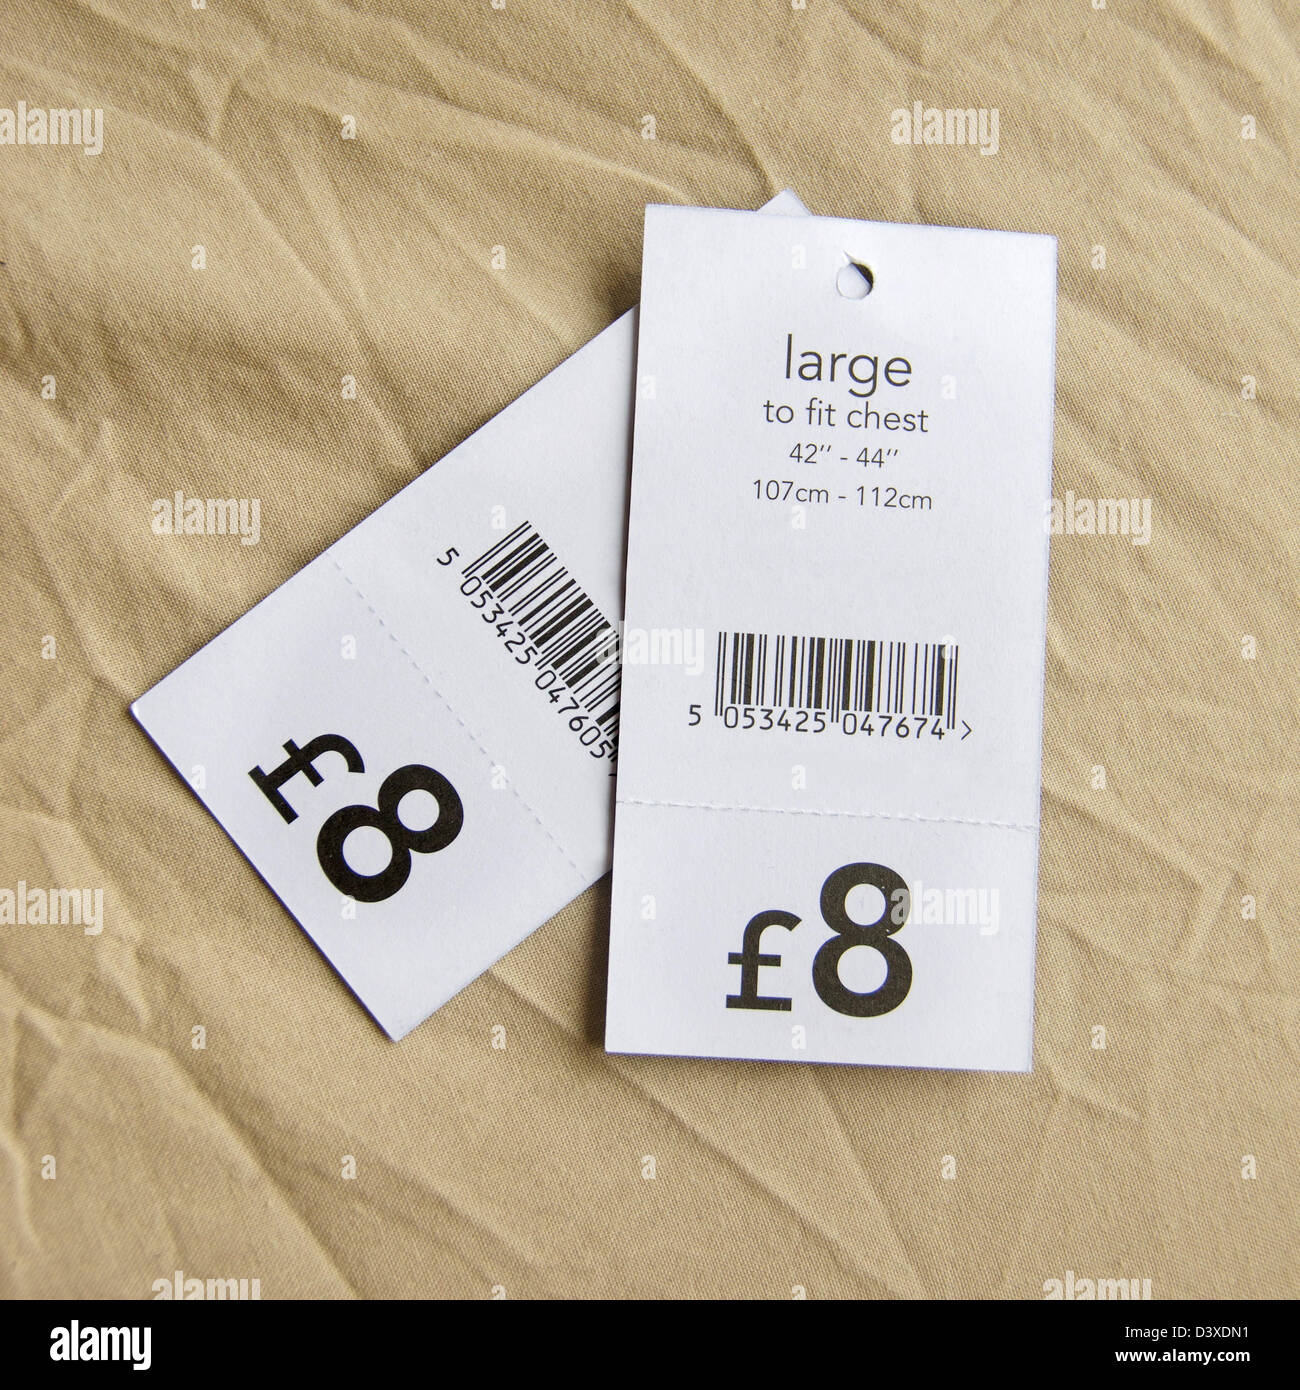 Pound price tags for upper body clothes, England, United